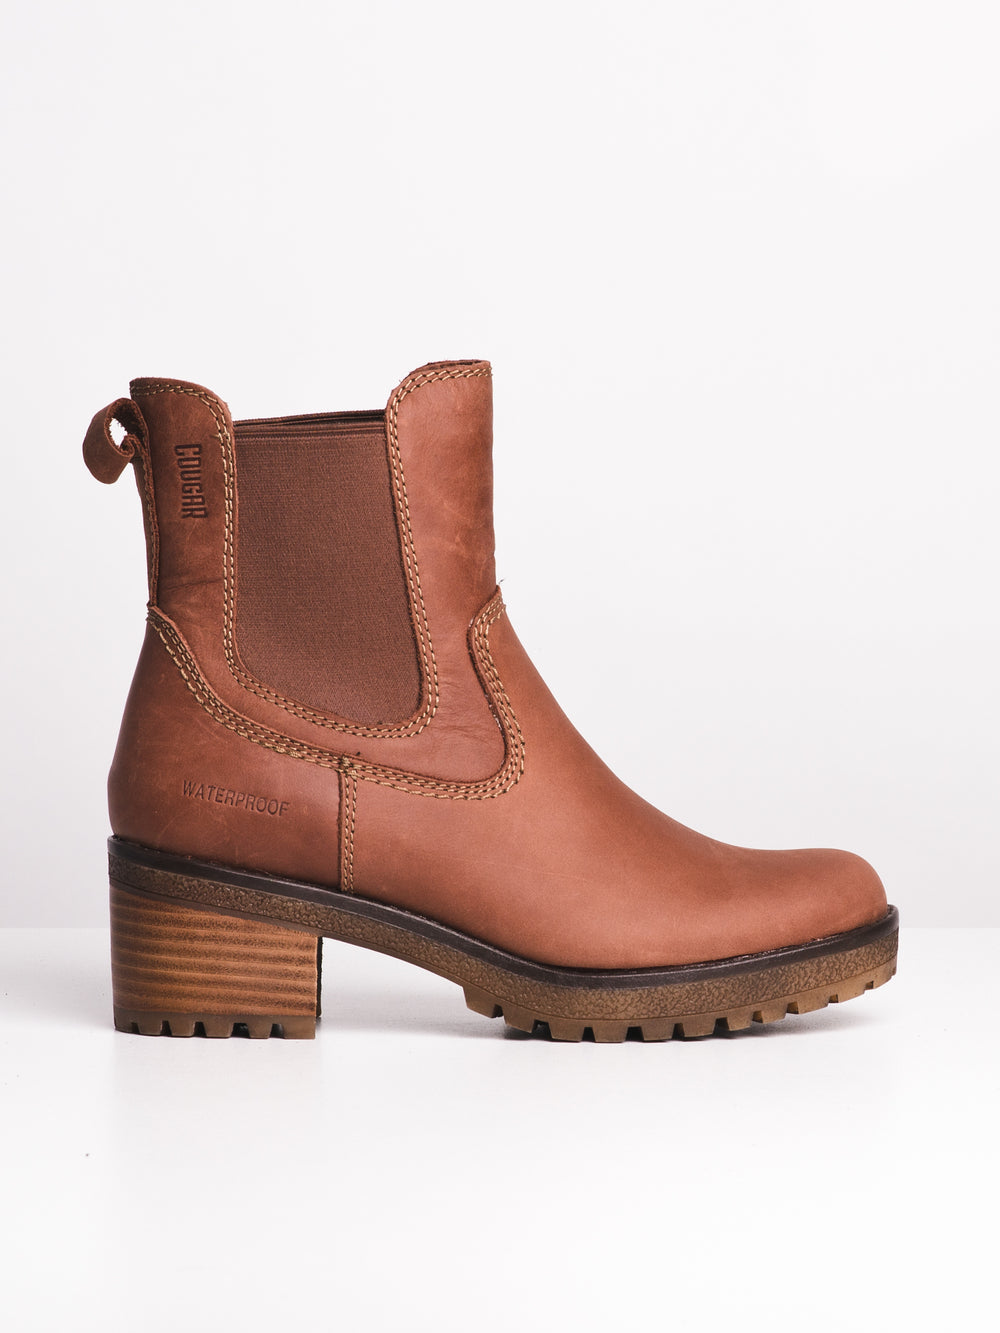 WOMENS DALLAS - BROWN - CLEARANCE